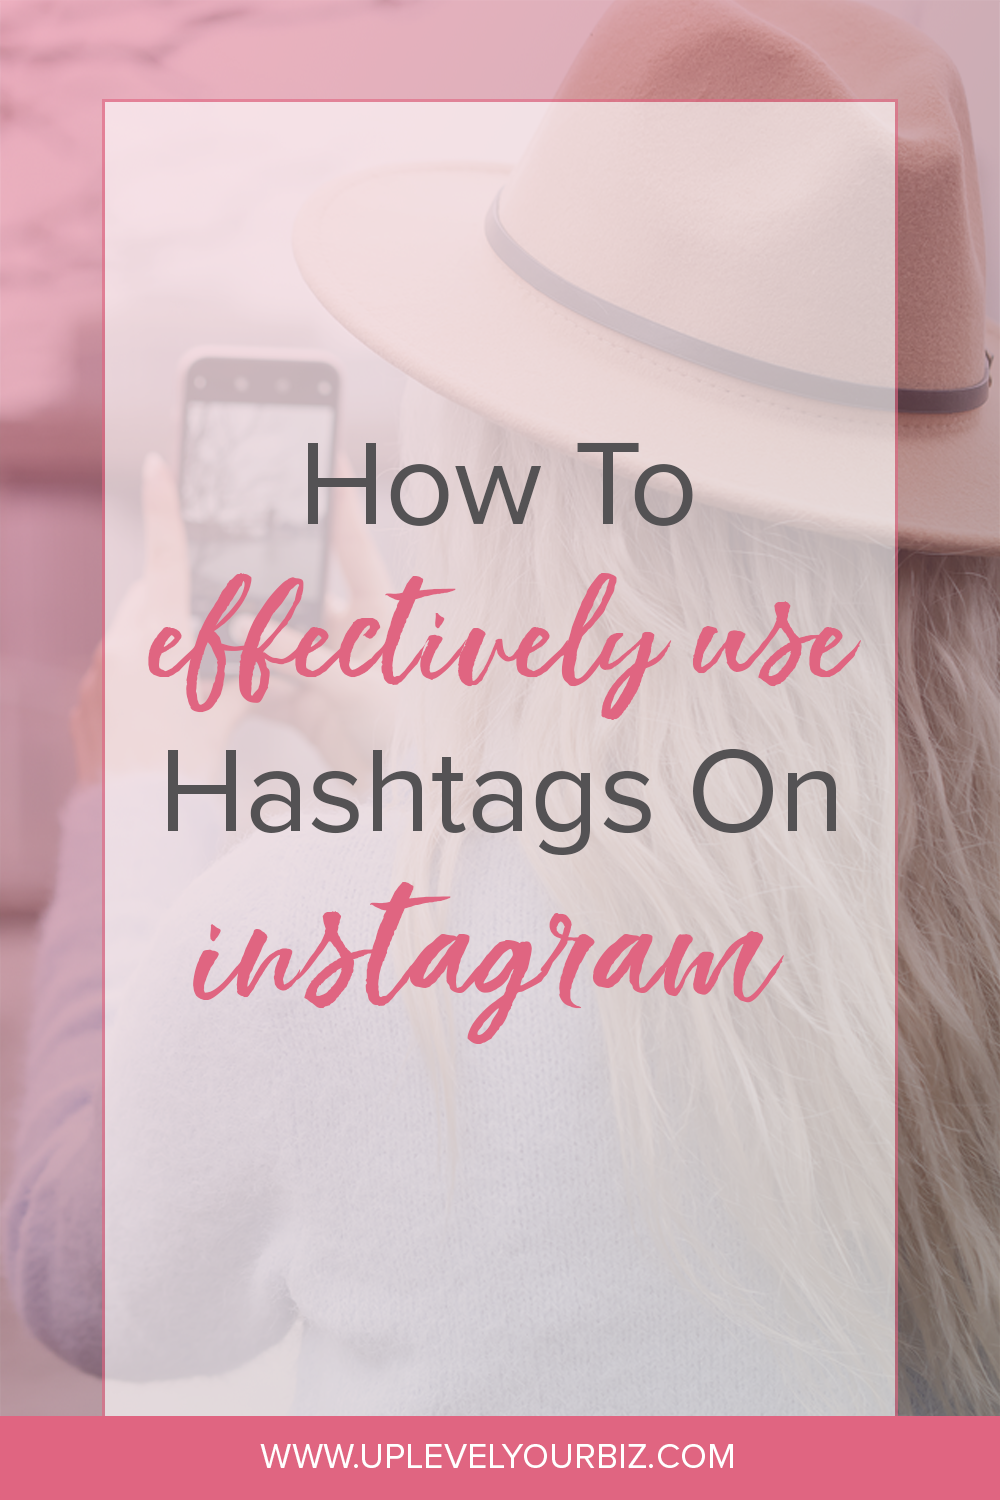 How to Effectively Use Hashtags on Instagram